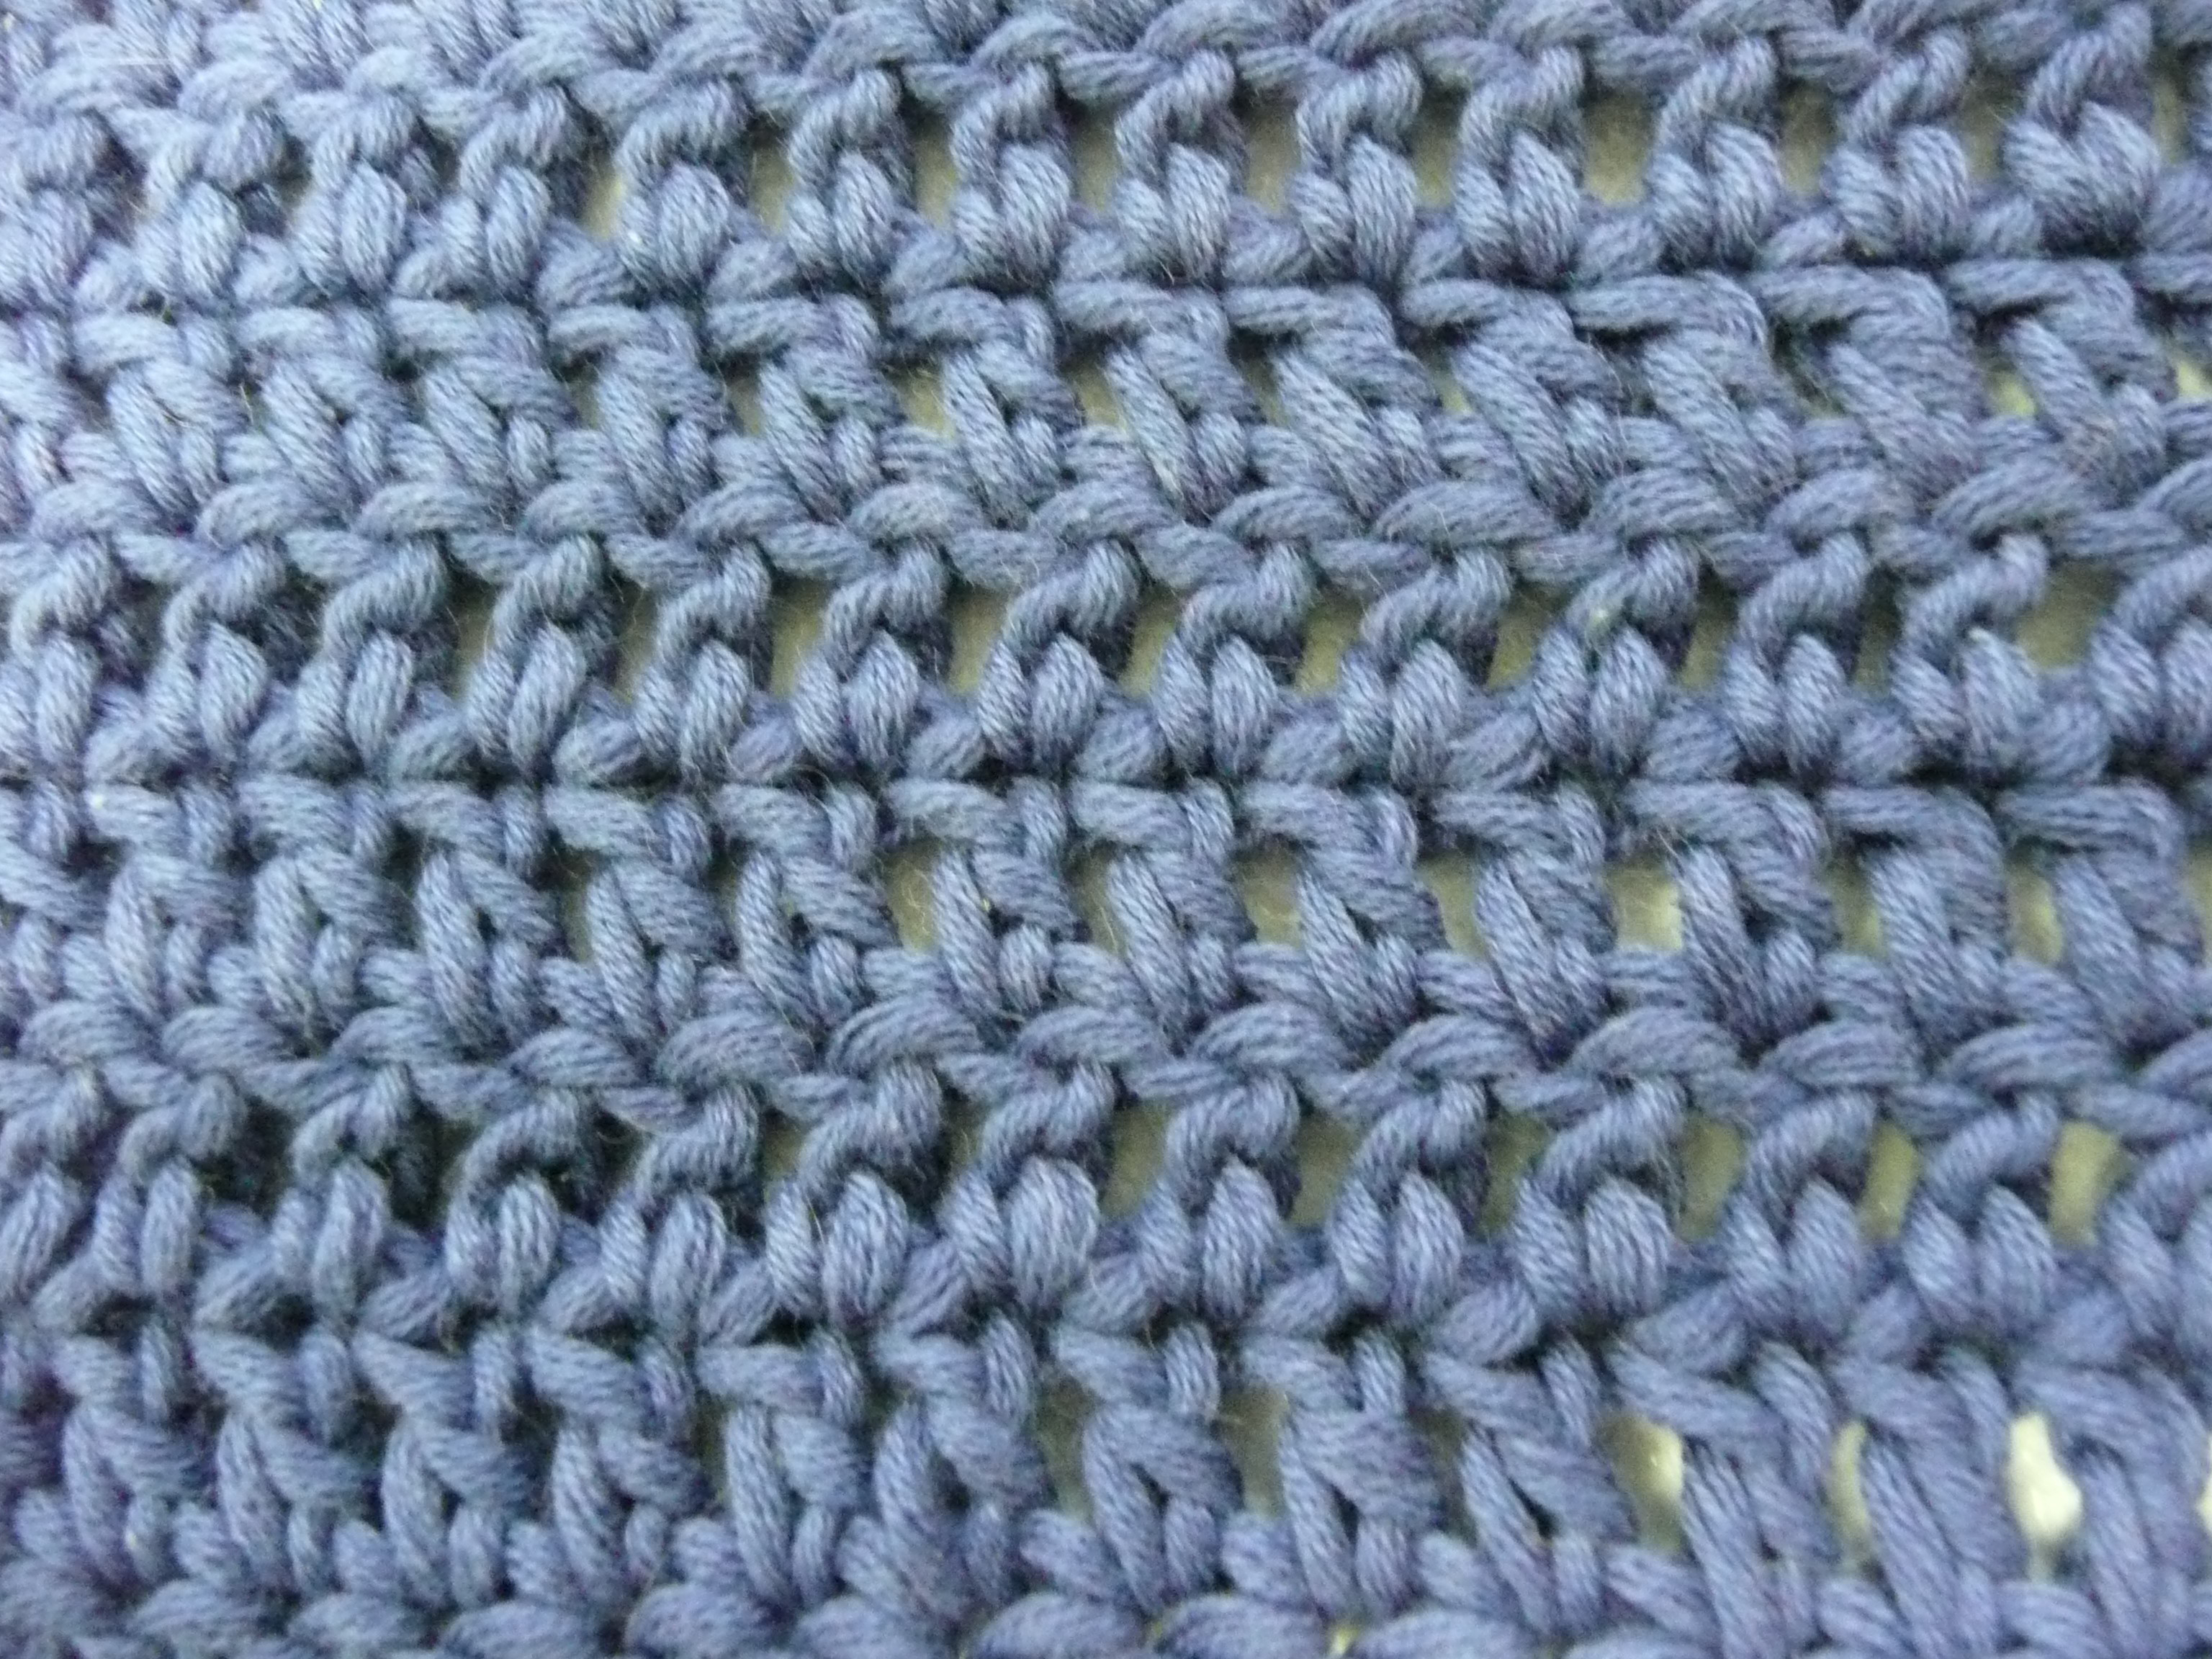 Double Crochet Stitch Awesome Double Crochet Stitch Wooden Spools Quilting Knitting & More Of Awesome 41 Pictures Double Crochet Stitch